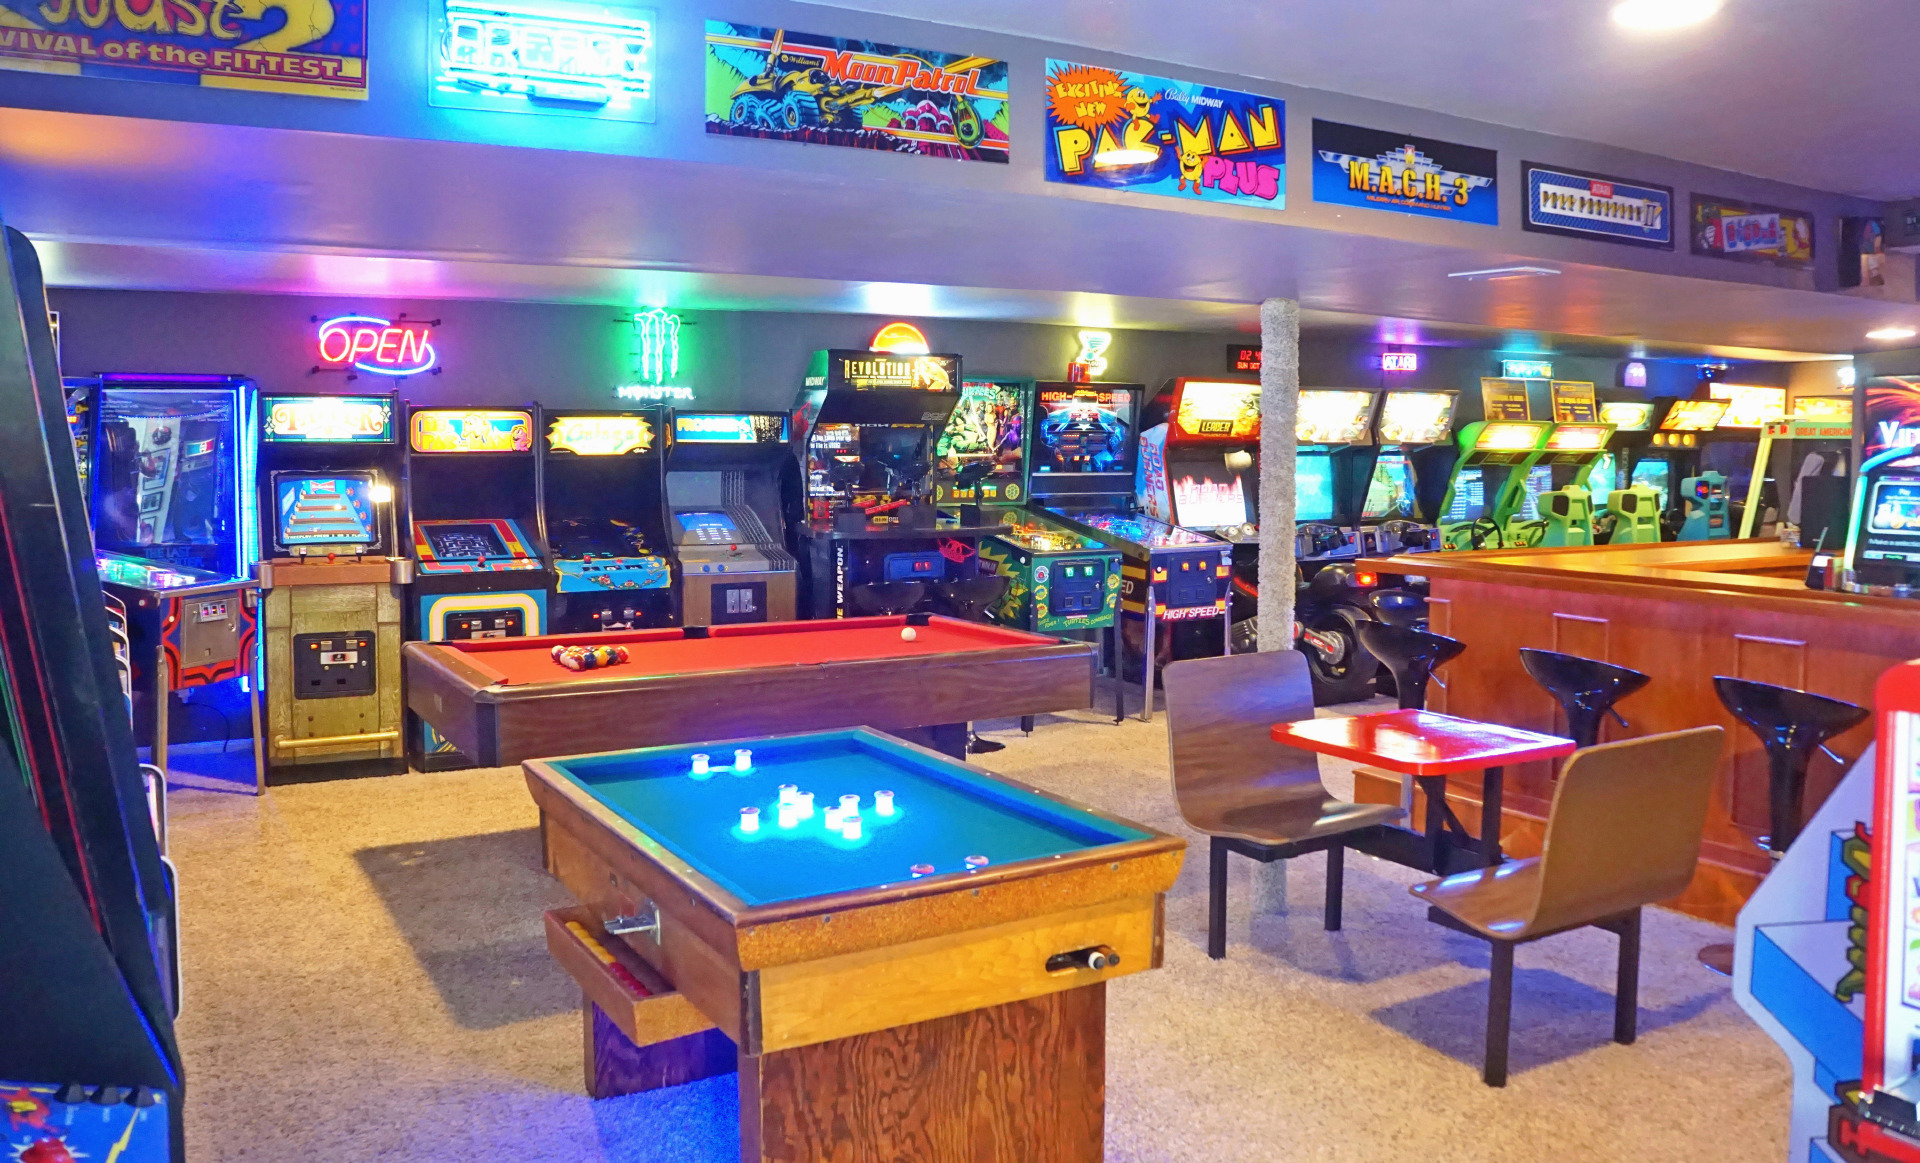 For gamers like me who grew up with arcades, having a game cabinet the basement would have been the ultimate cool toy. The Basement Arcade